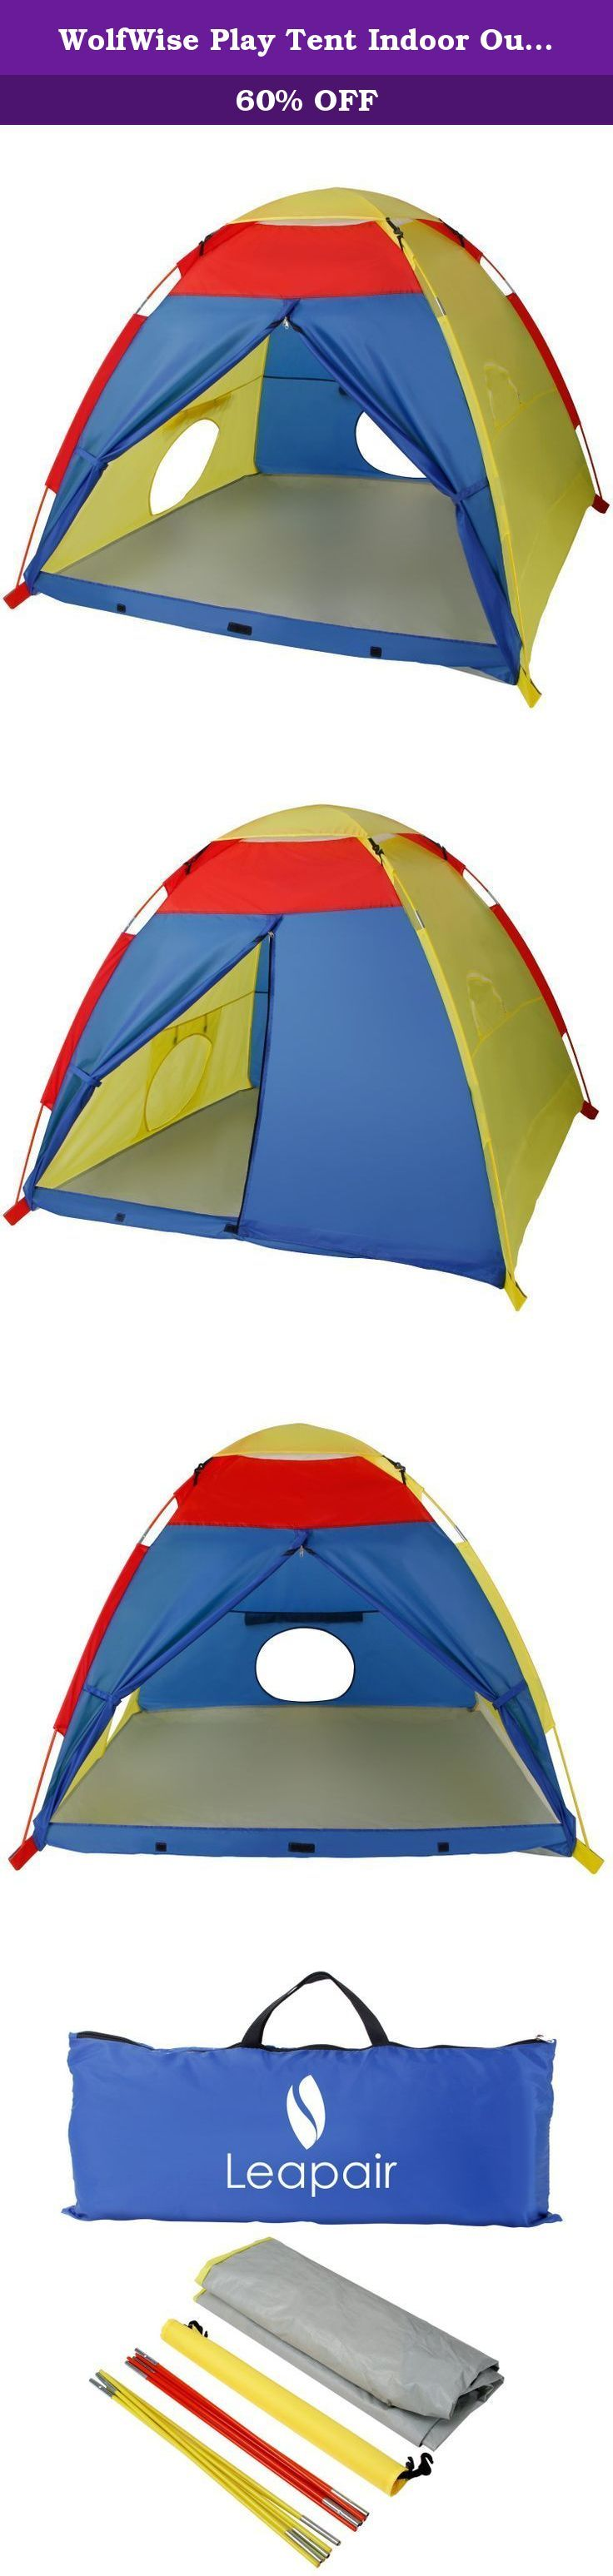 WolfWise Play Tent Indoor Outdoor Pop Up House. Description: 1.The Play Tent may sound like a toy, but it is constructed out of premium materials often found in high end professional camping tents. 2.Built for years of play time, the structural support of the tent comprises of two heavy duty shock-corded poles that's safe, light weight, and easy to setup. 3.Durable ventilating mesh, anti-tear polyester, and waterproof is carefully sewed together to make up the tent itself. 4.Large…